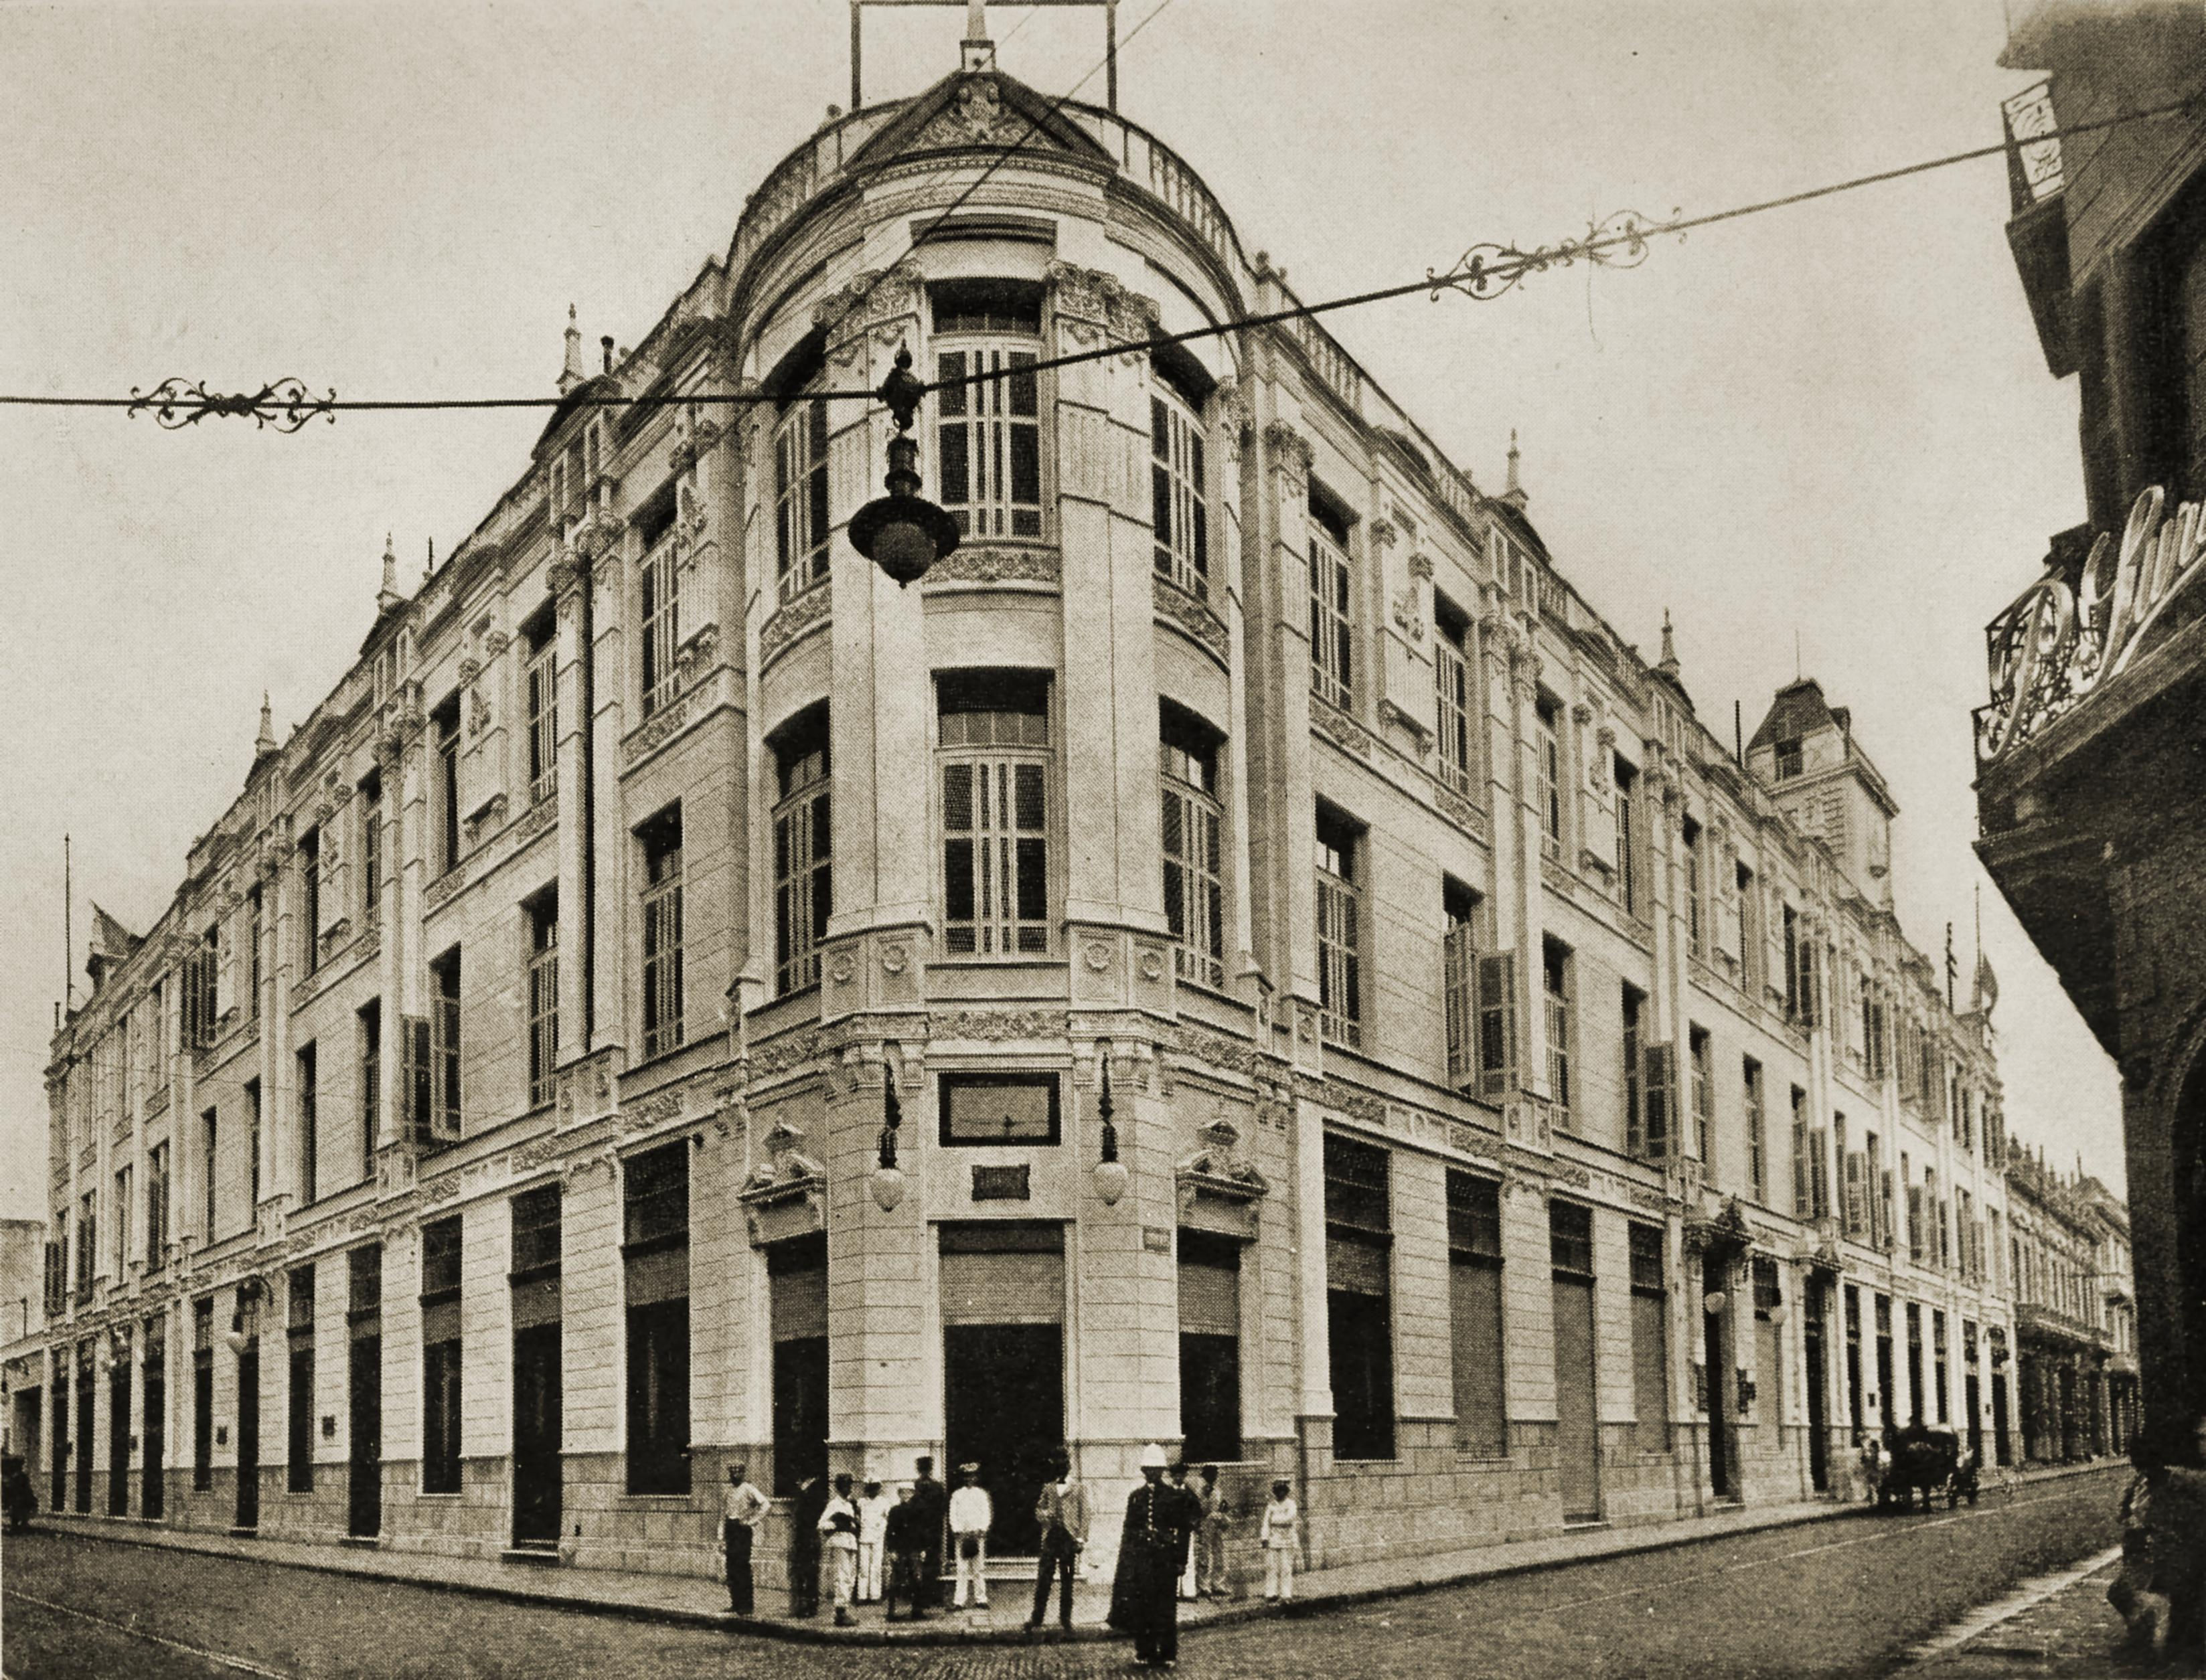 Correo Central (Post Office), Buenos Aires, Argentina about 1917